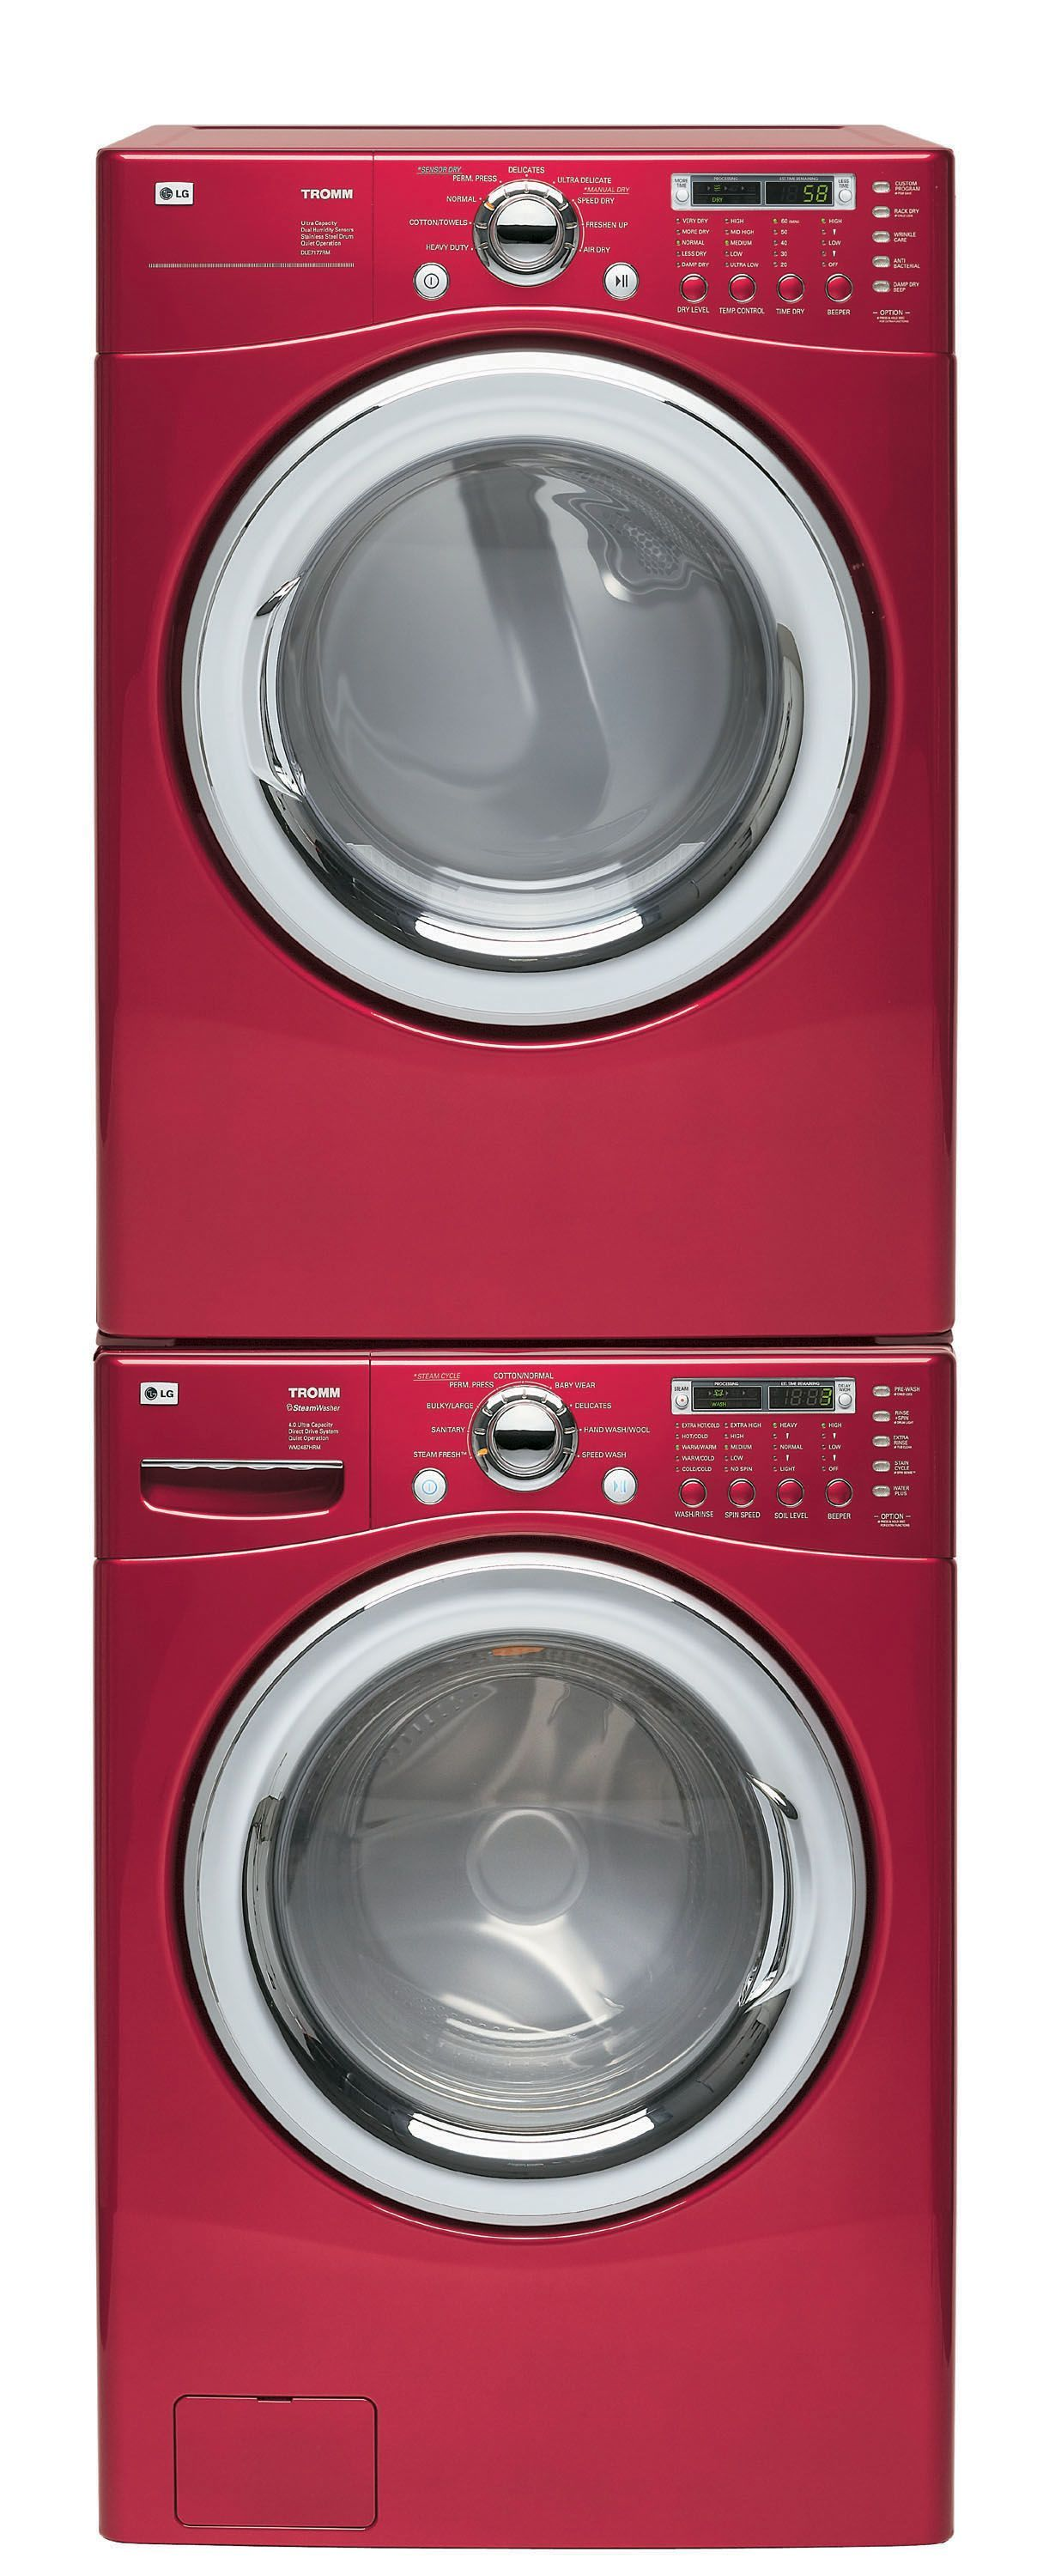 Merveilleux LG Stackable Washer Dryer